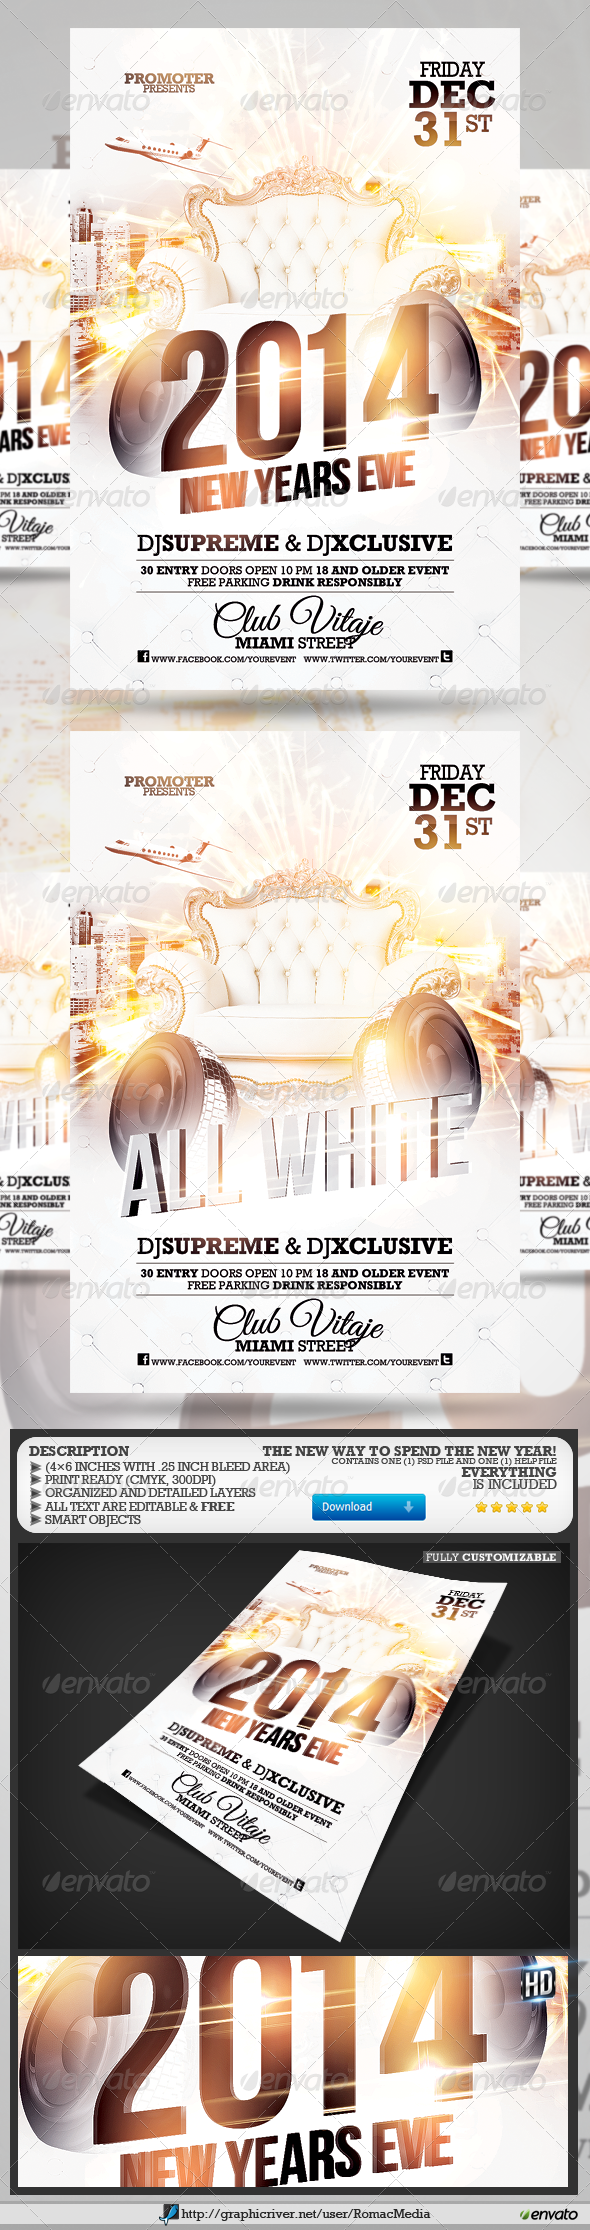 All White NYE Party Flyer - Clubs & Parties Events